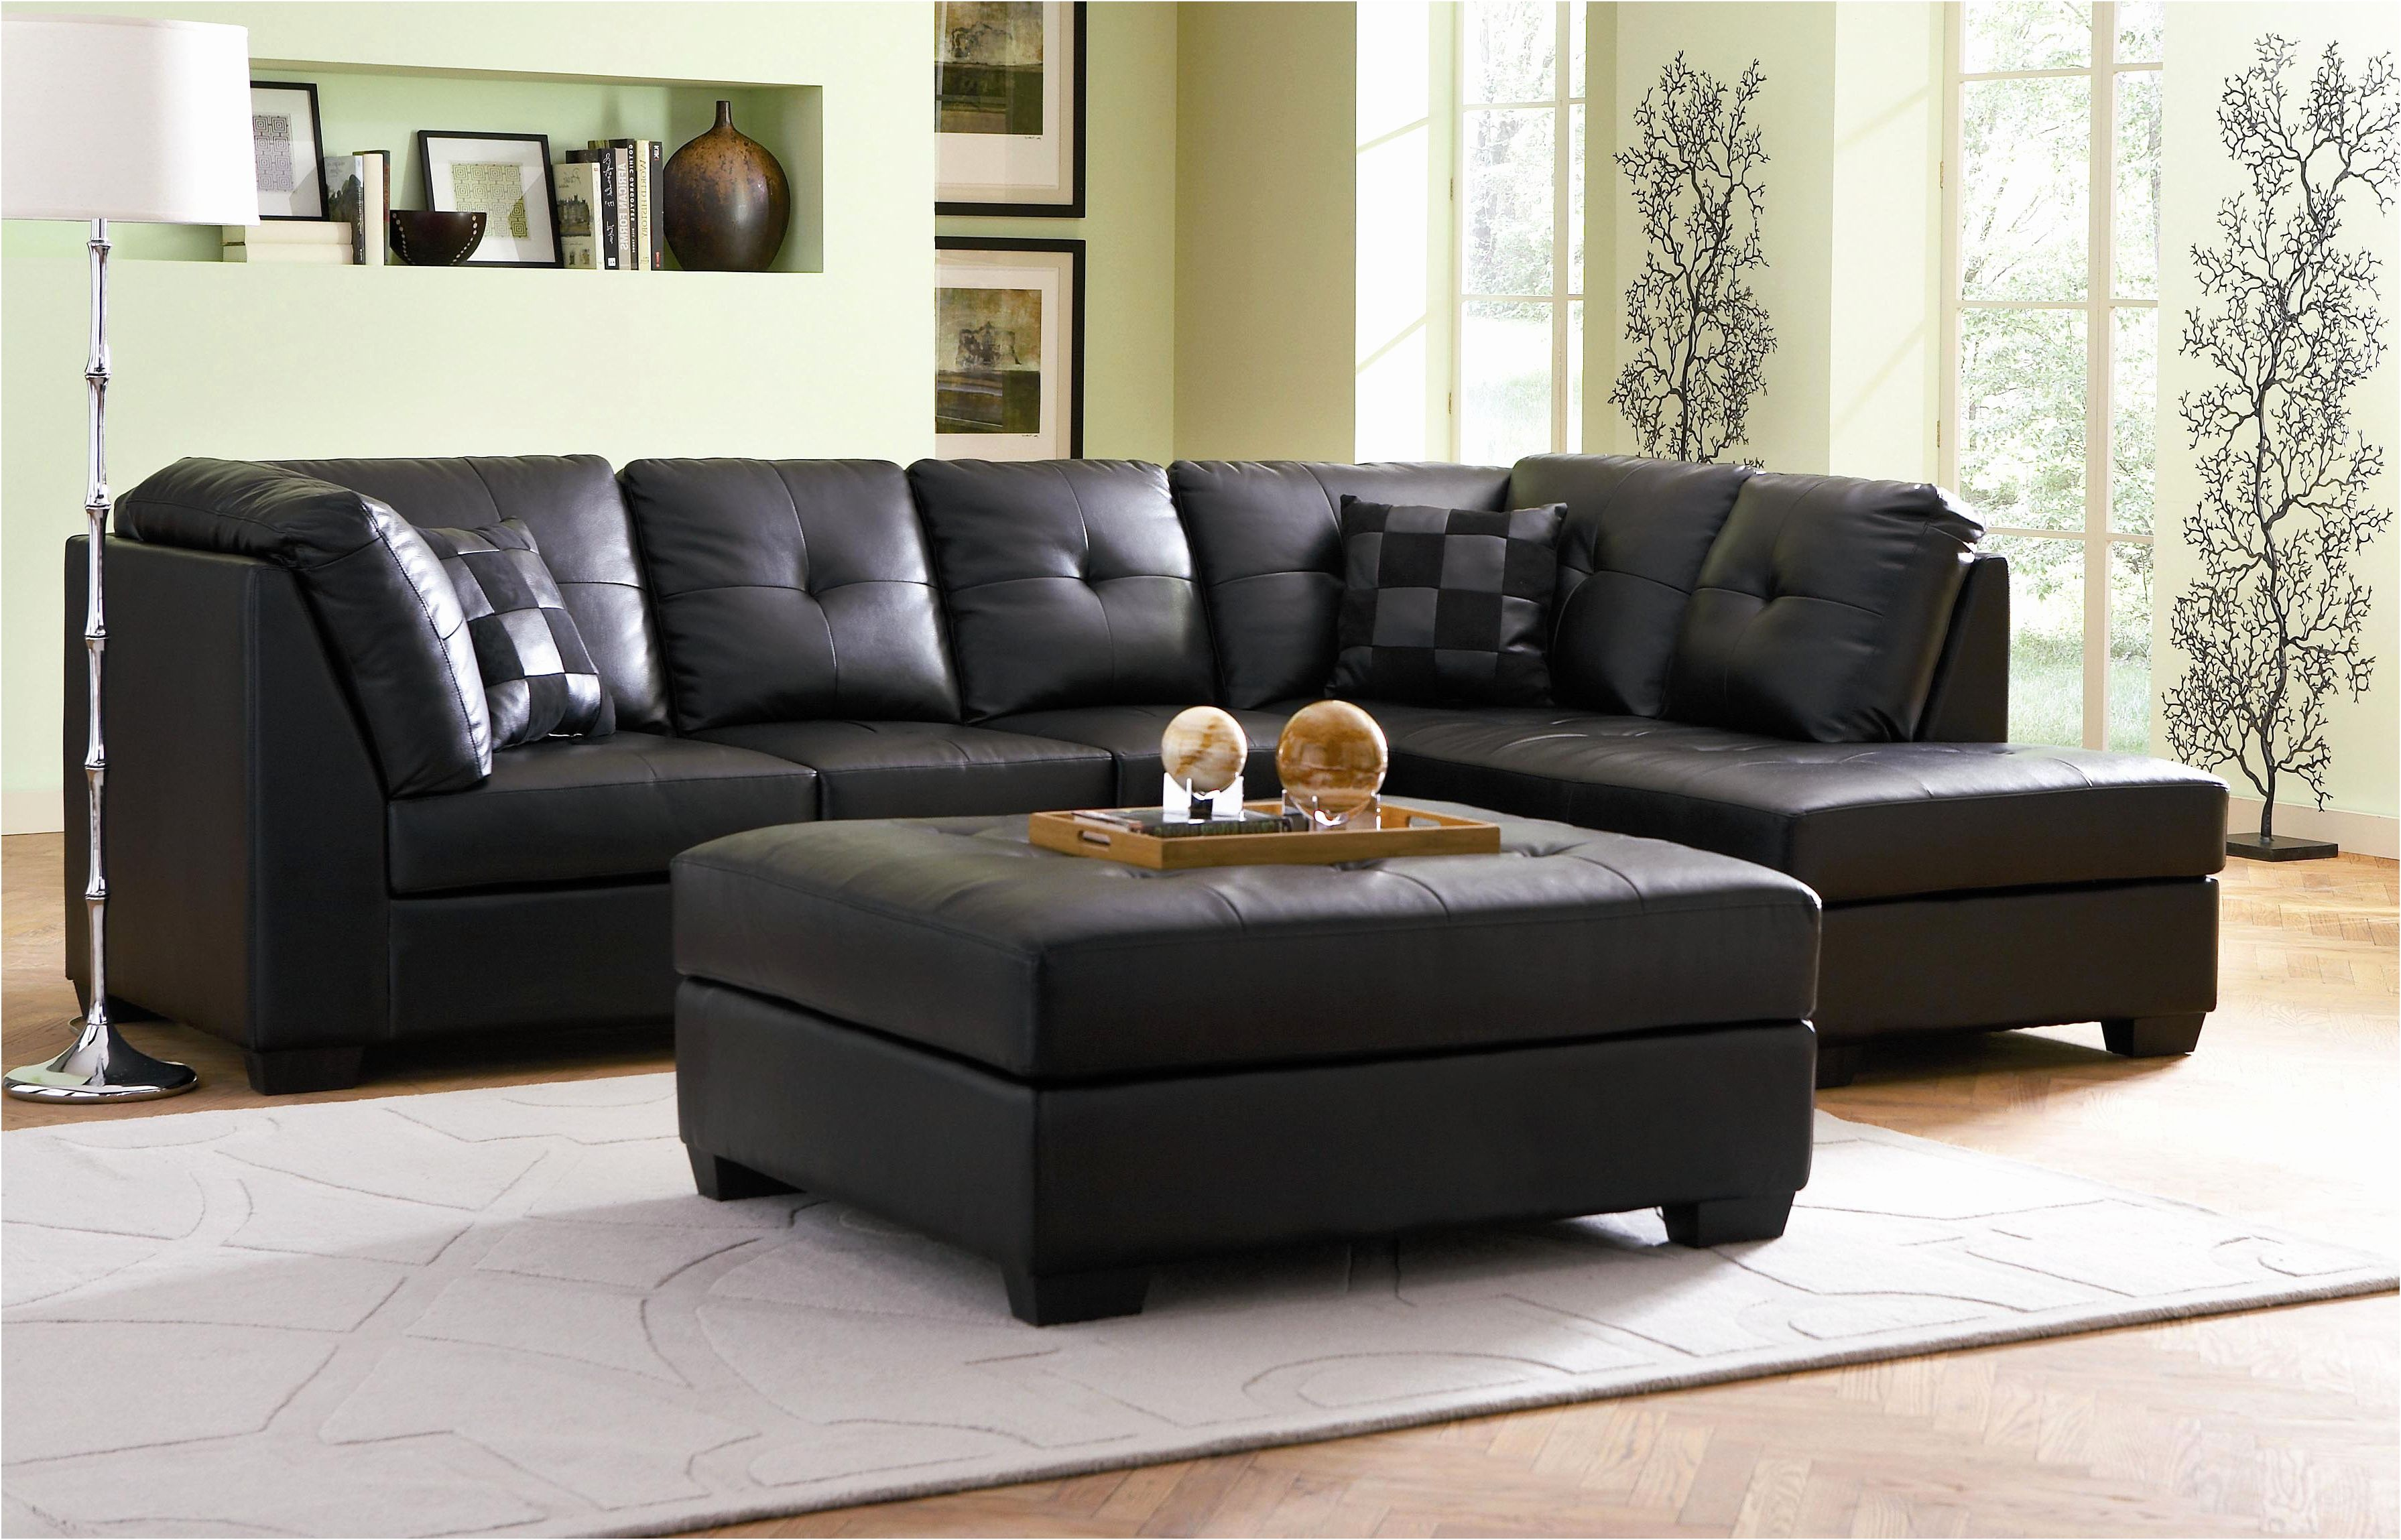 Nice Black Sectional Sleeper Sofa Beautiful Black Sectional